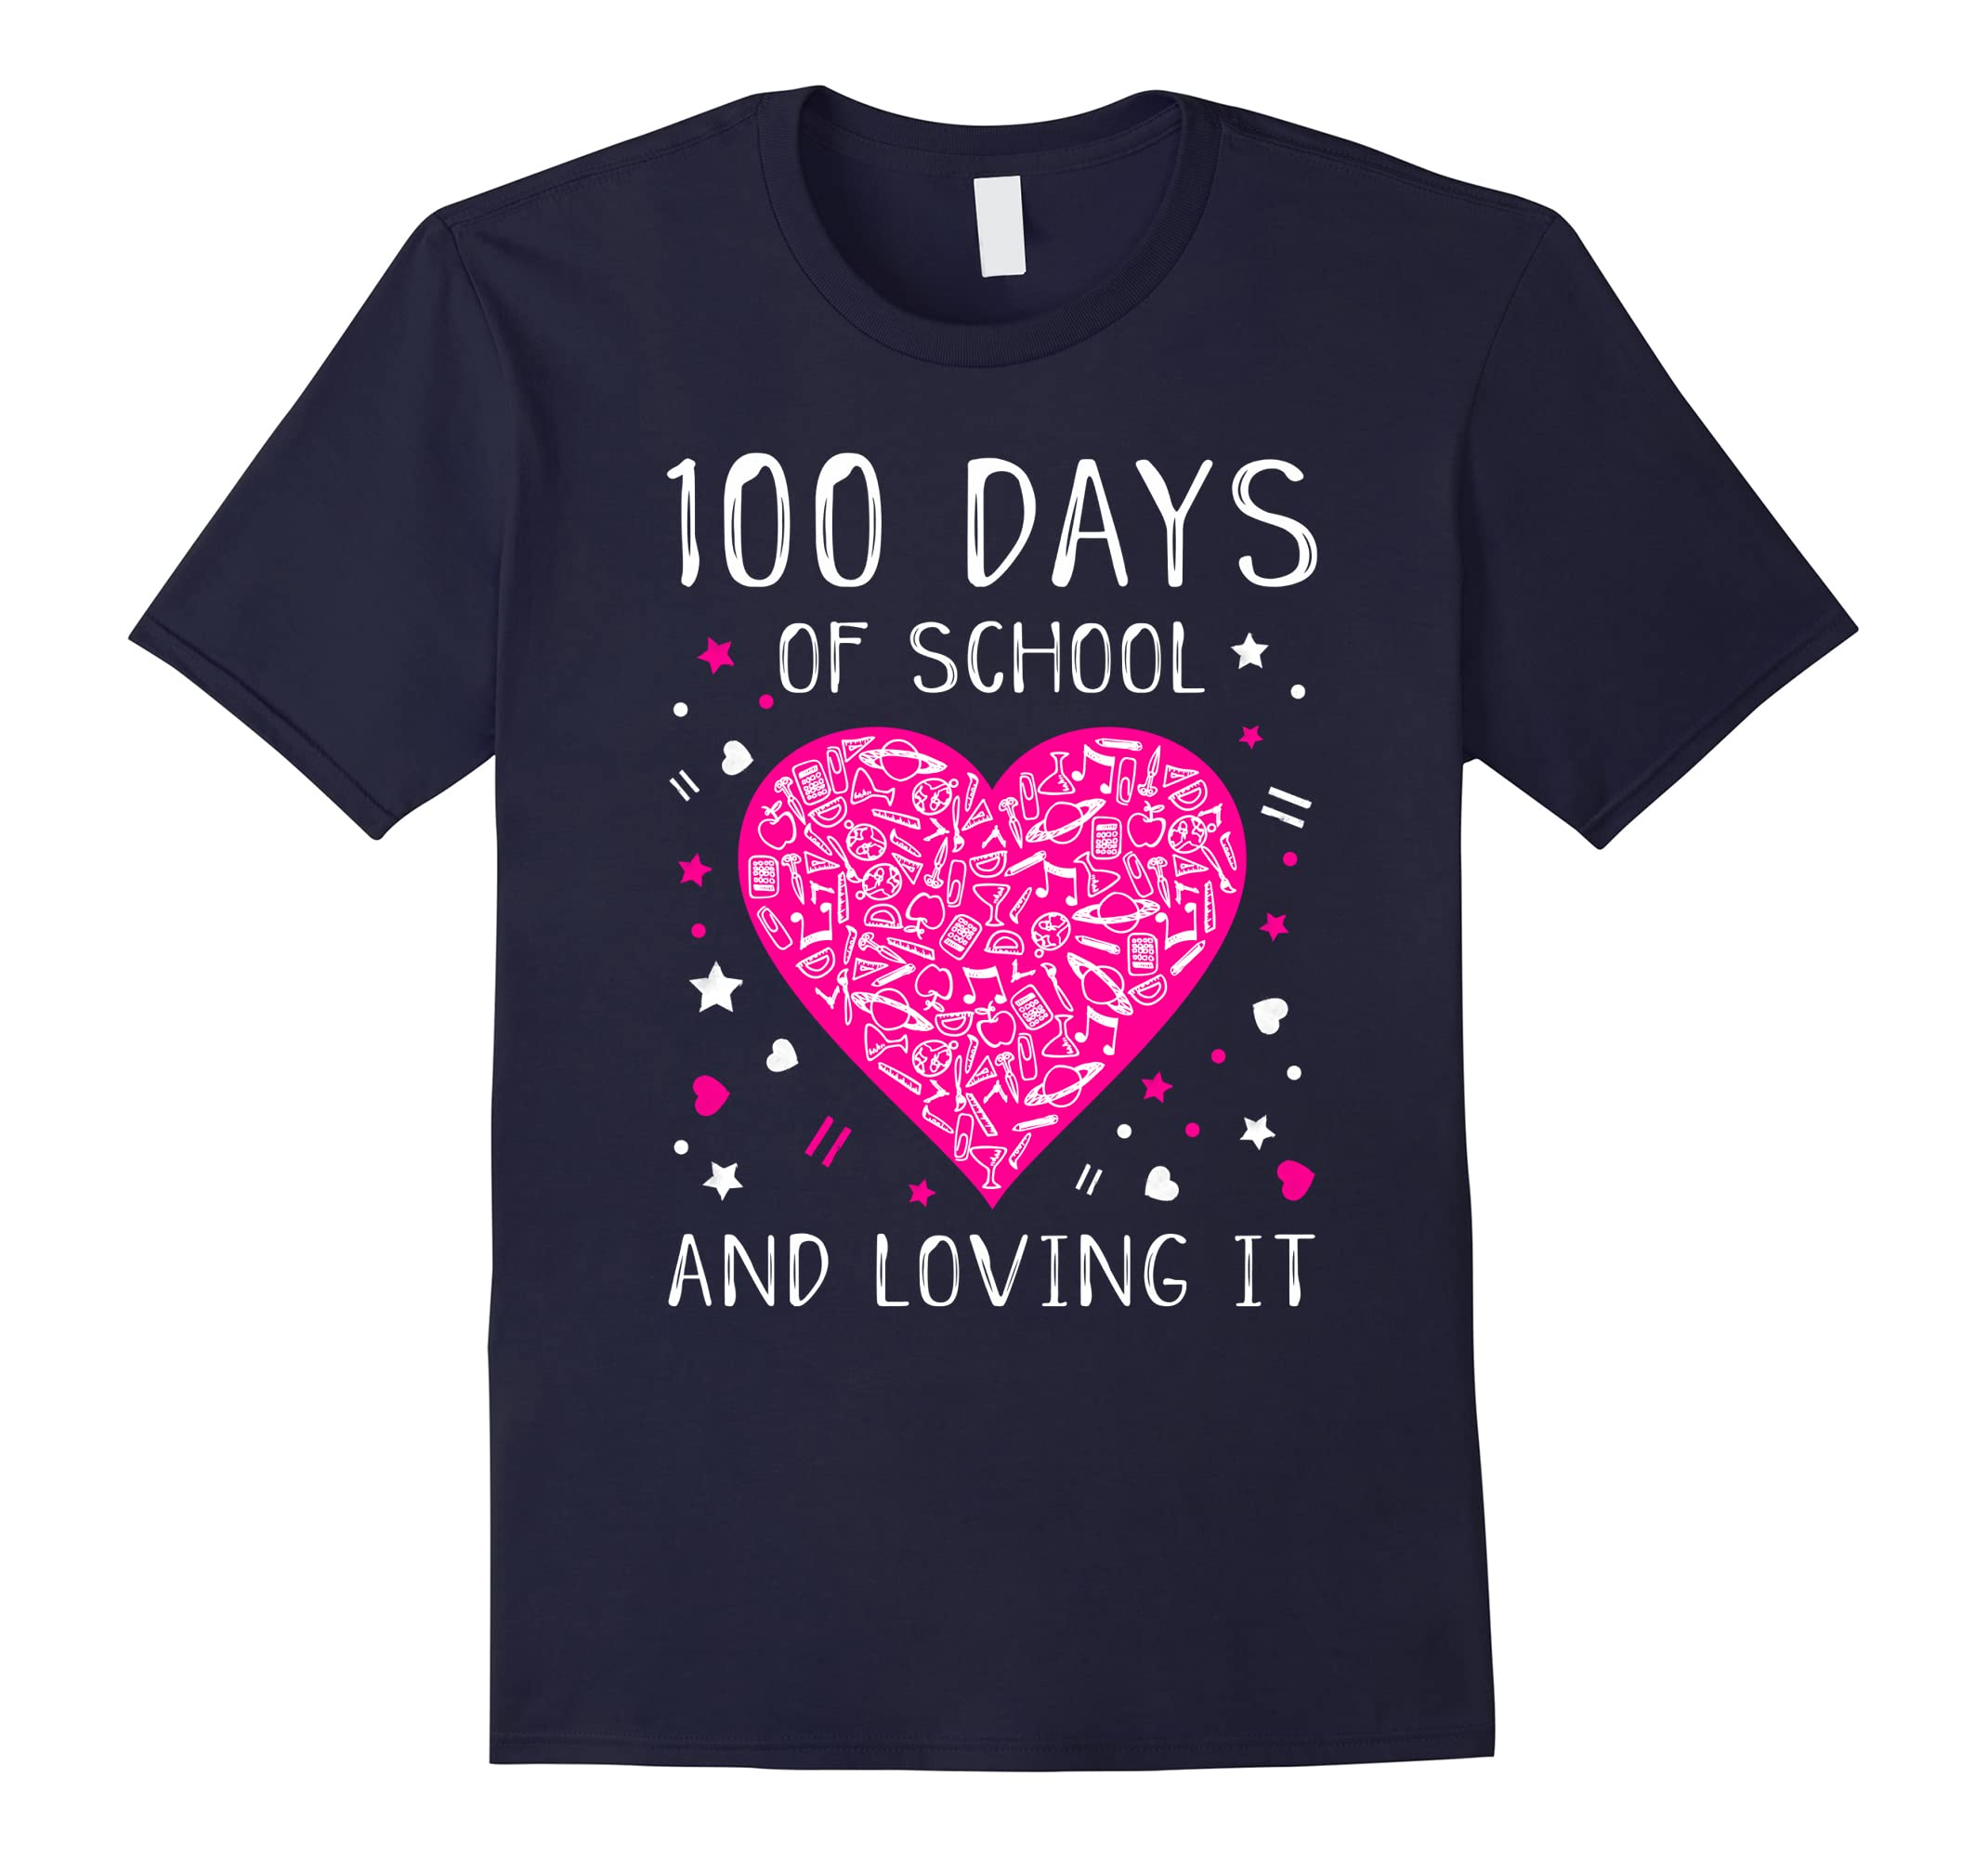 100 Days of School and Loving It Cute Heart T-shirt-ah my shirt one gift